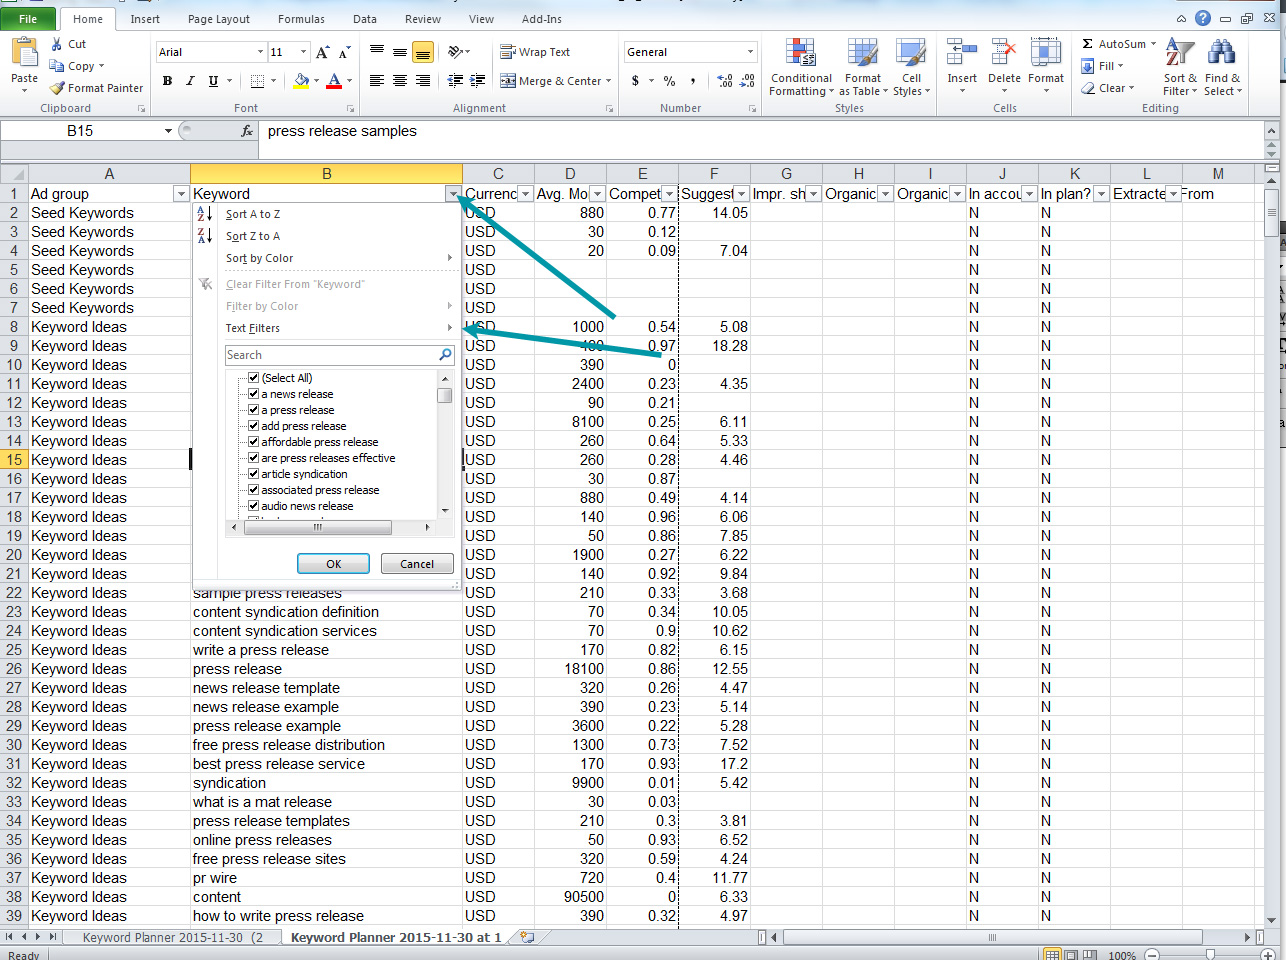 Using Excel Filter To Delete Or Keep Rows Containing